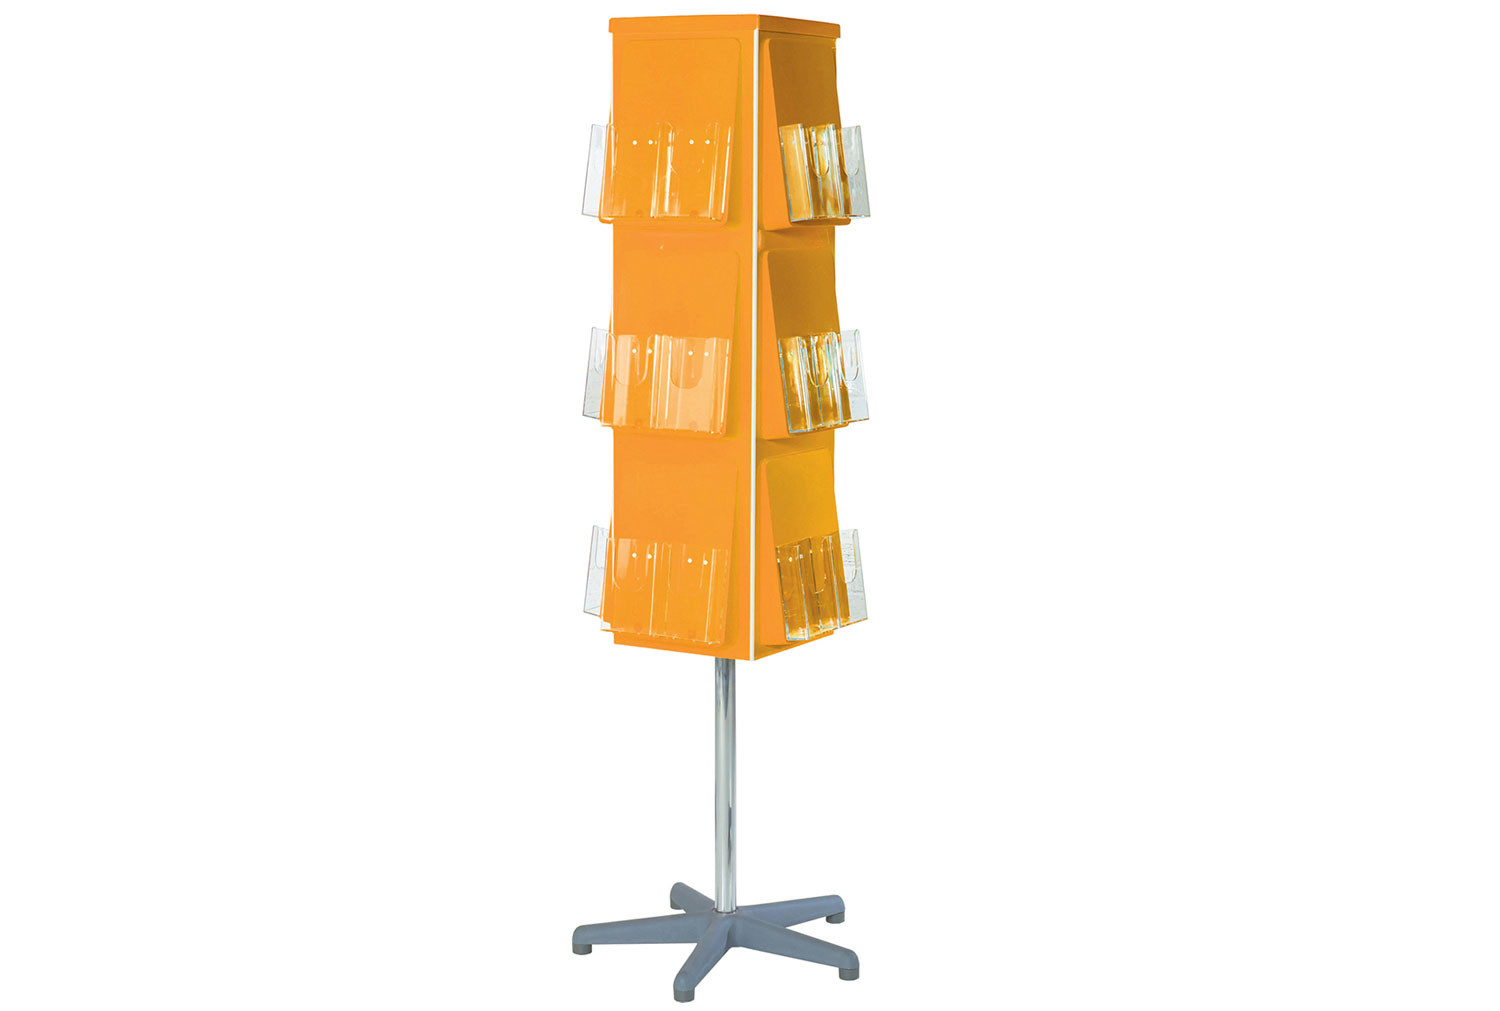 Vibrant 4 Sided Revolving Leaflet Dispenser